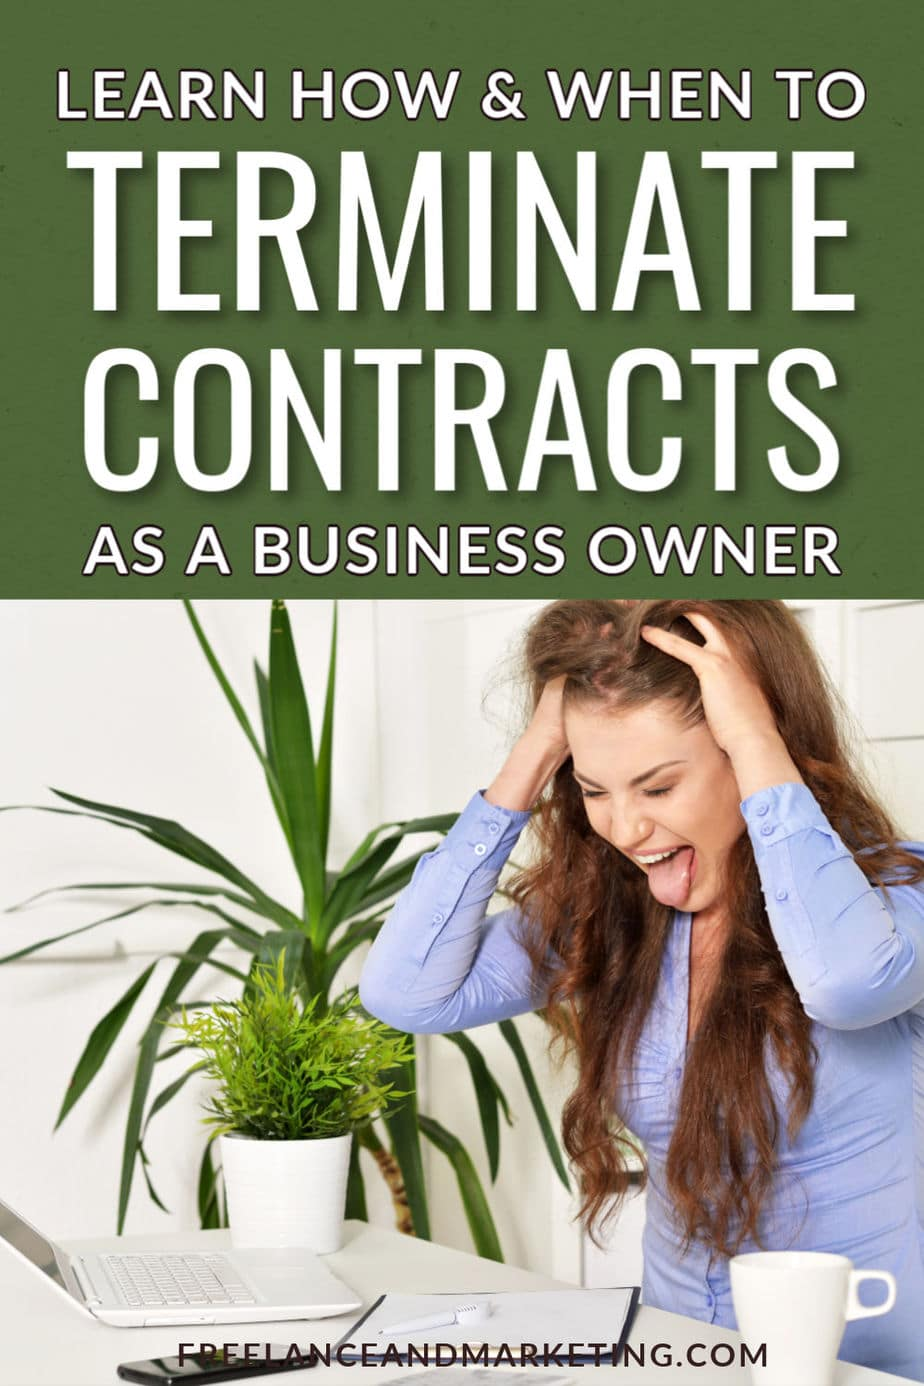 Knowing how and when to terminate your contracts is just as important as knowing how to form contracts. There are various grounds under which you can terminate a contract and make it void. Some of those grounds are unenforceability, natural disasters, mootness, etc. Learn how to terminate a contract and when is it a good idea to do so. #terminatingcontracts #contracttermination #terminationofcontract #bloglegally #smallbusinessowner #smallbusiness #entrepreneur #legaltips